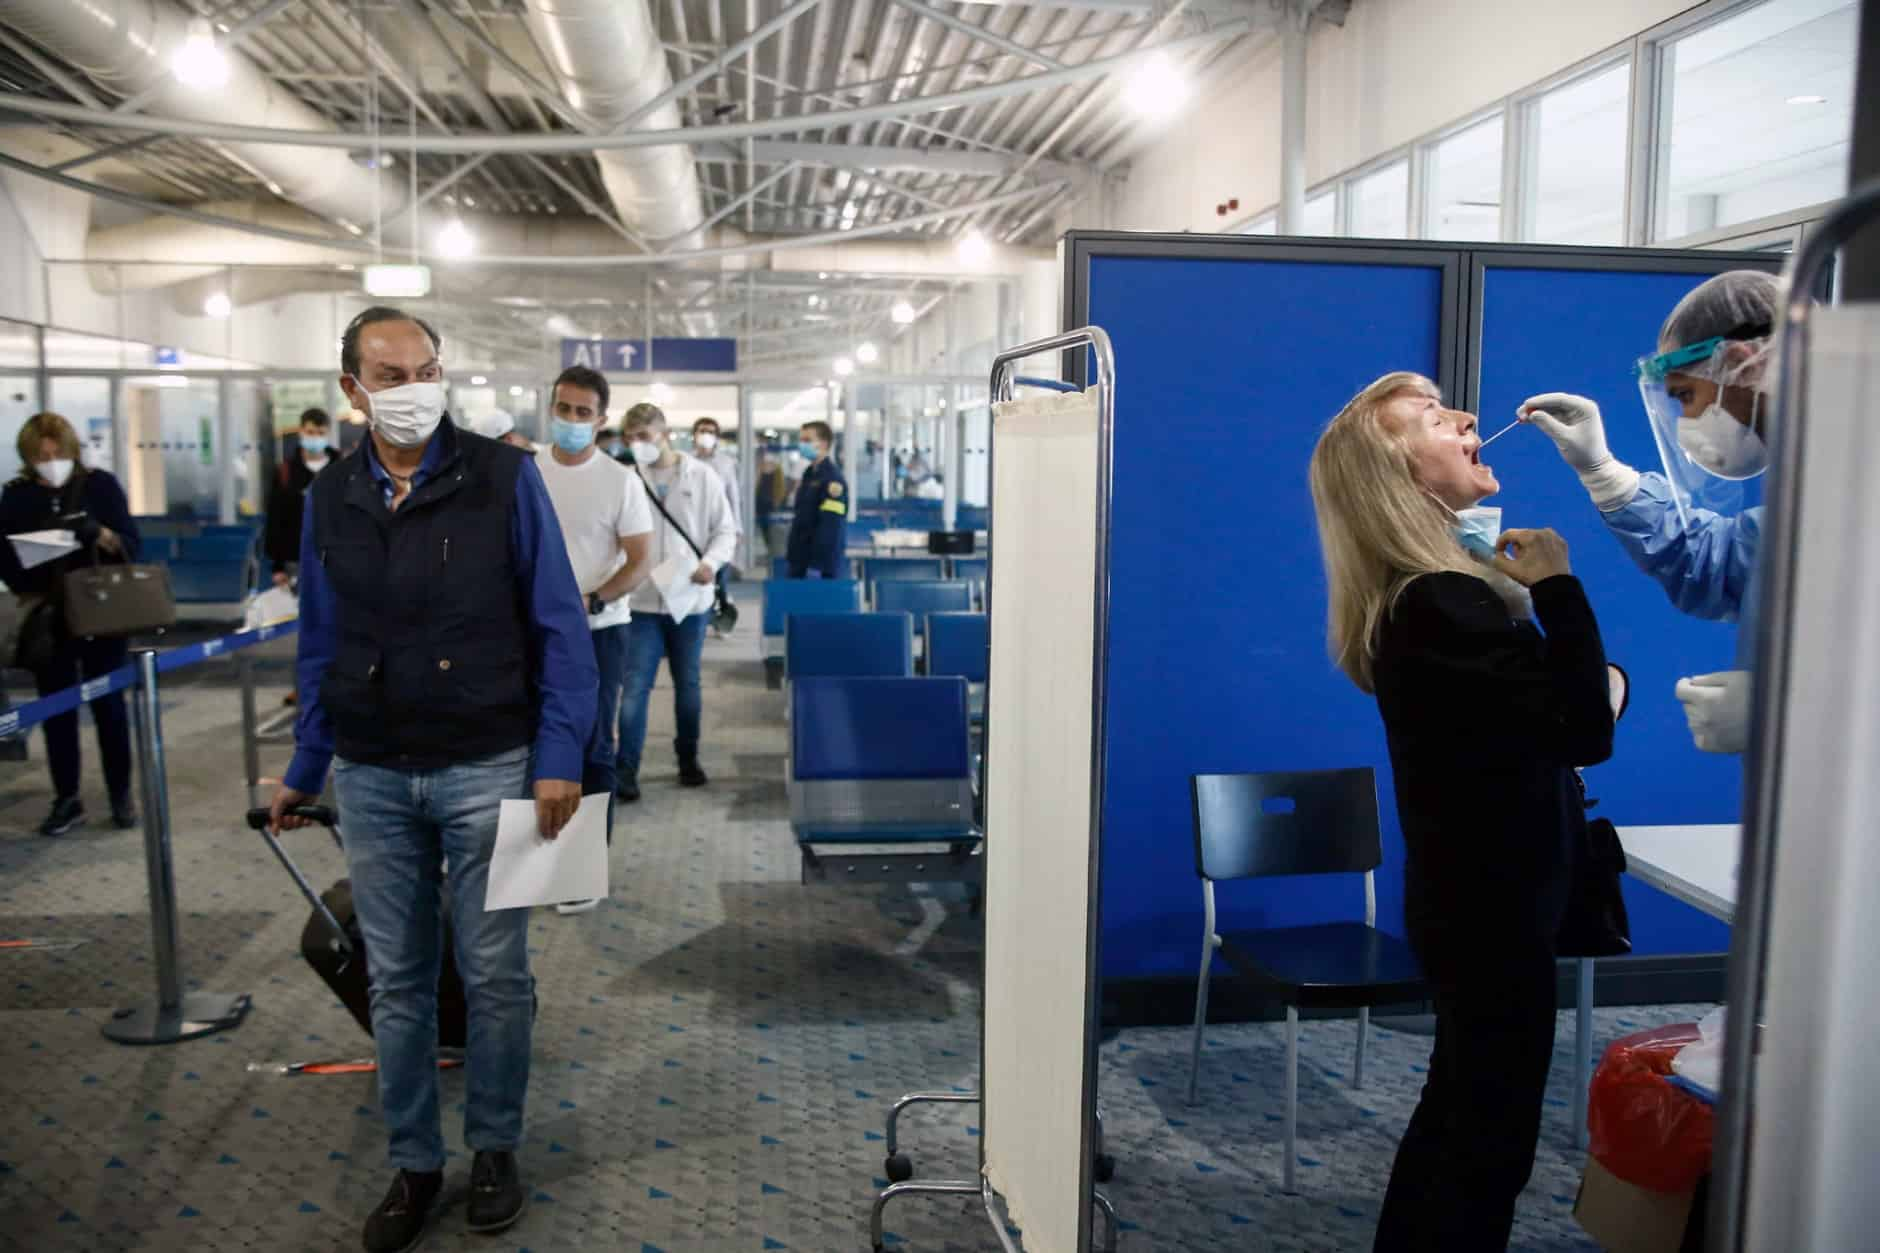 germany-planning-to-reimpose-quarantine-from-'high-risk'-areas